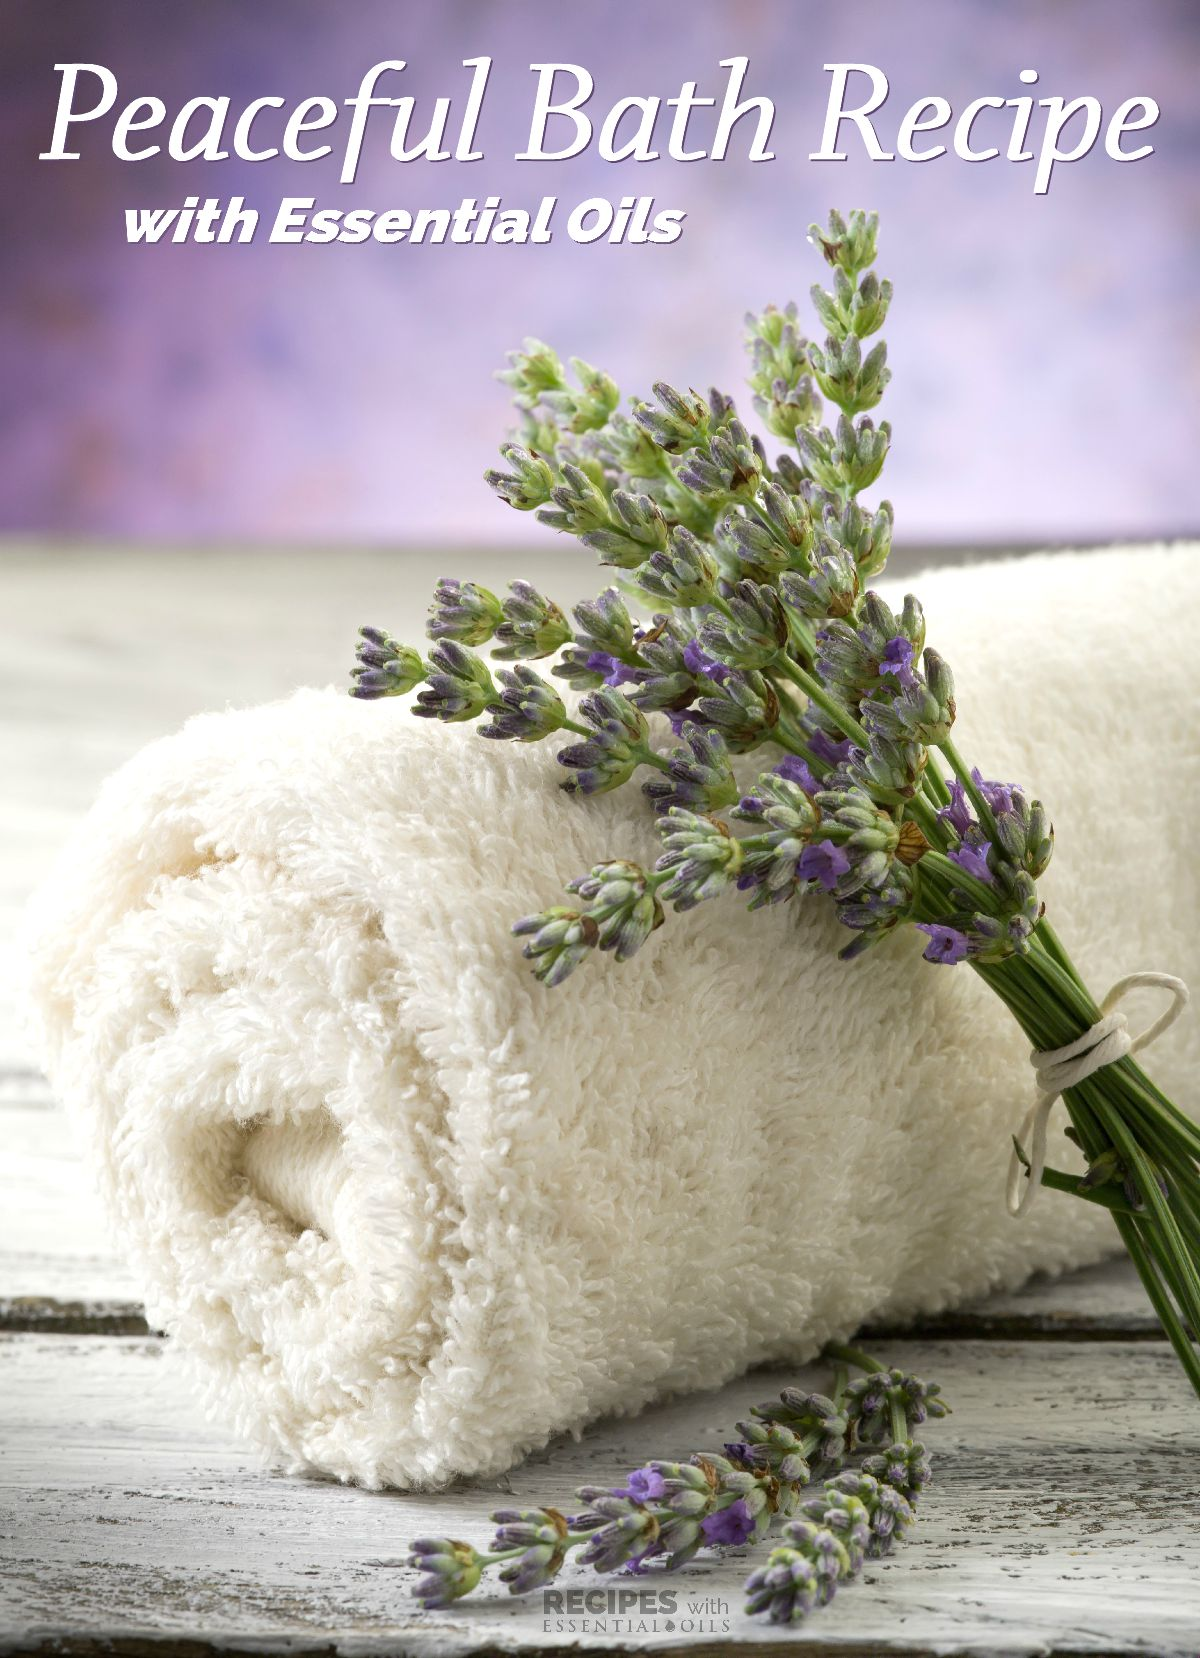 Peaceful Bath Recipe with Essential Oils | RecipesWithEssentialOils.com